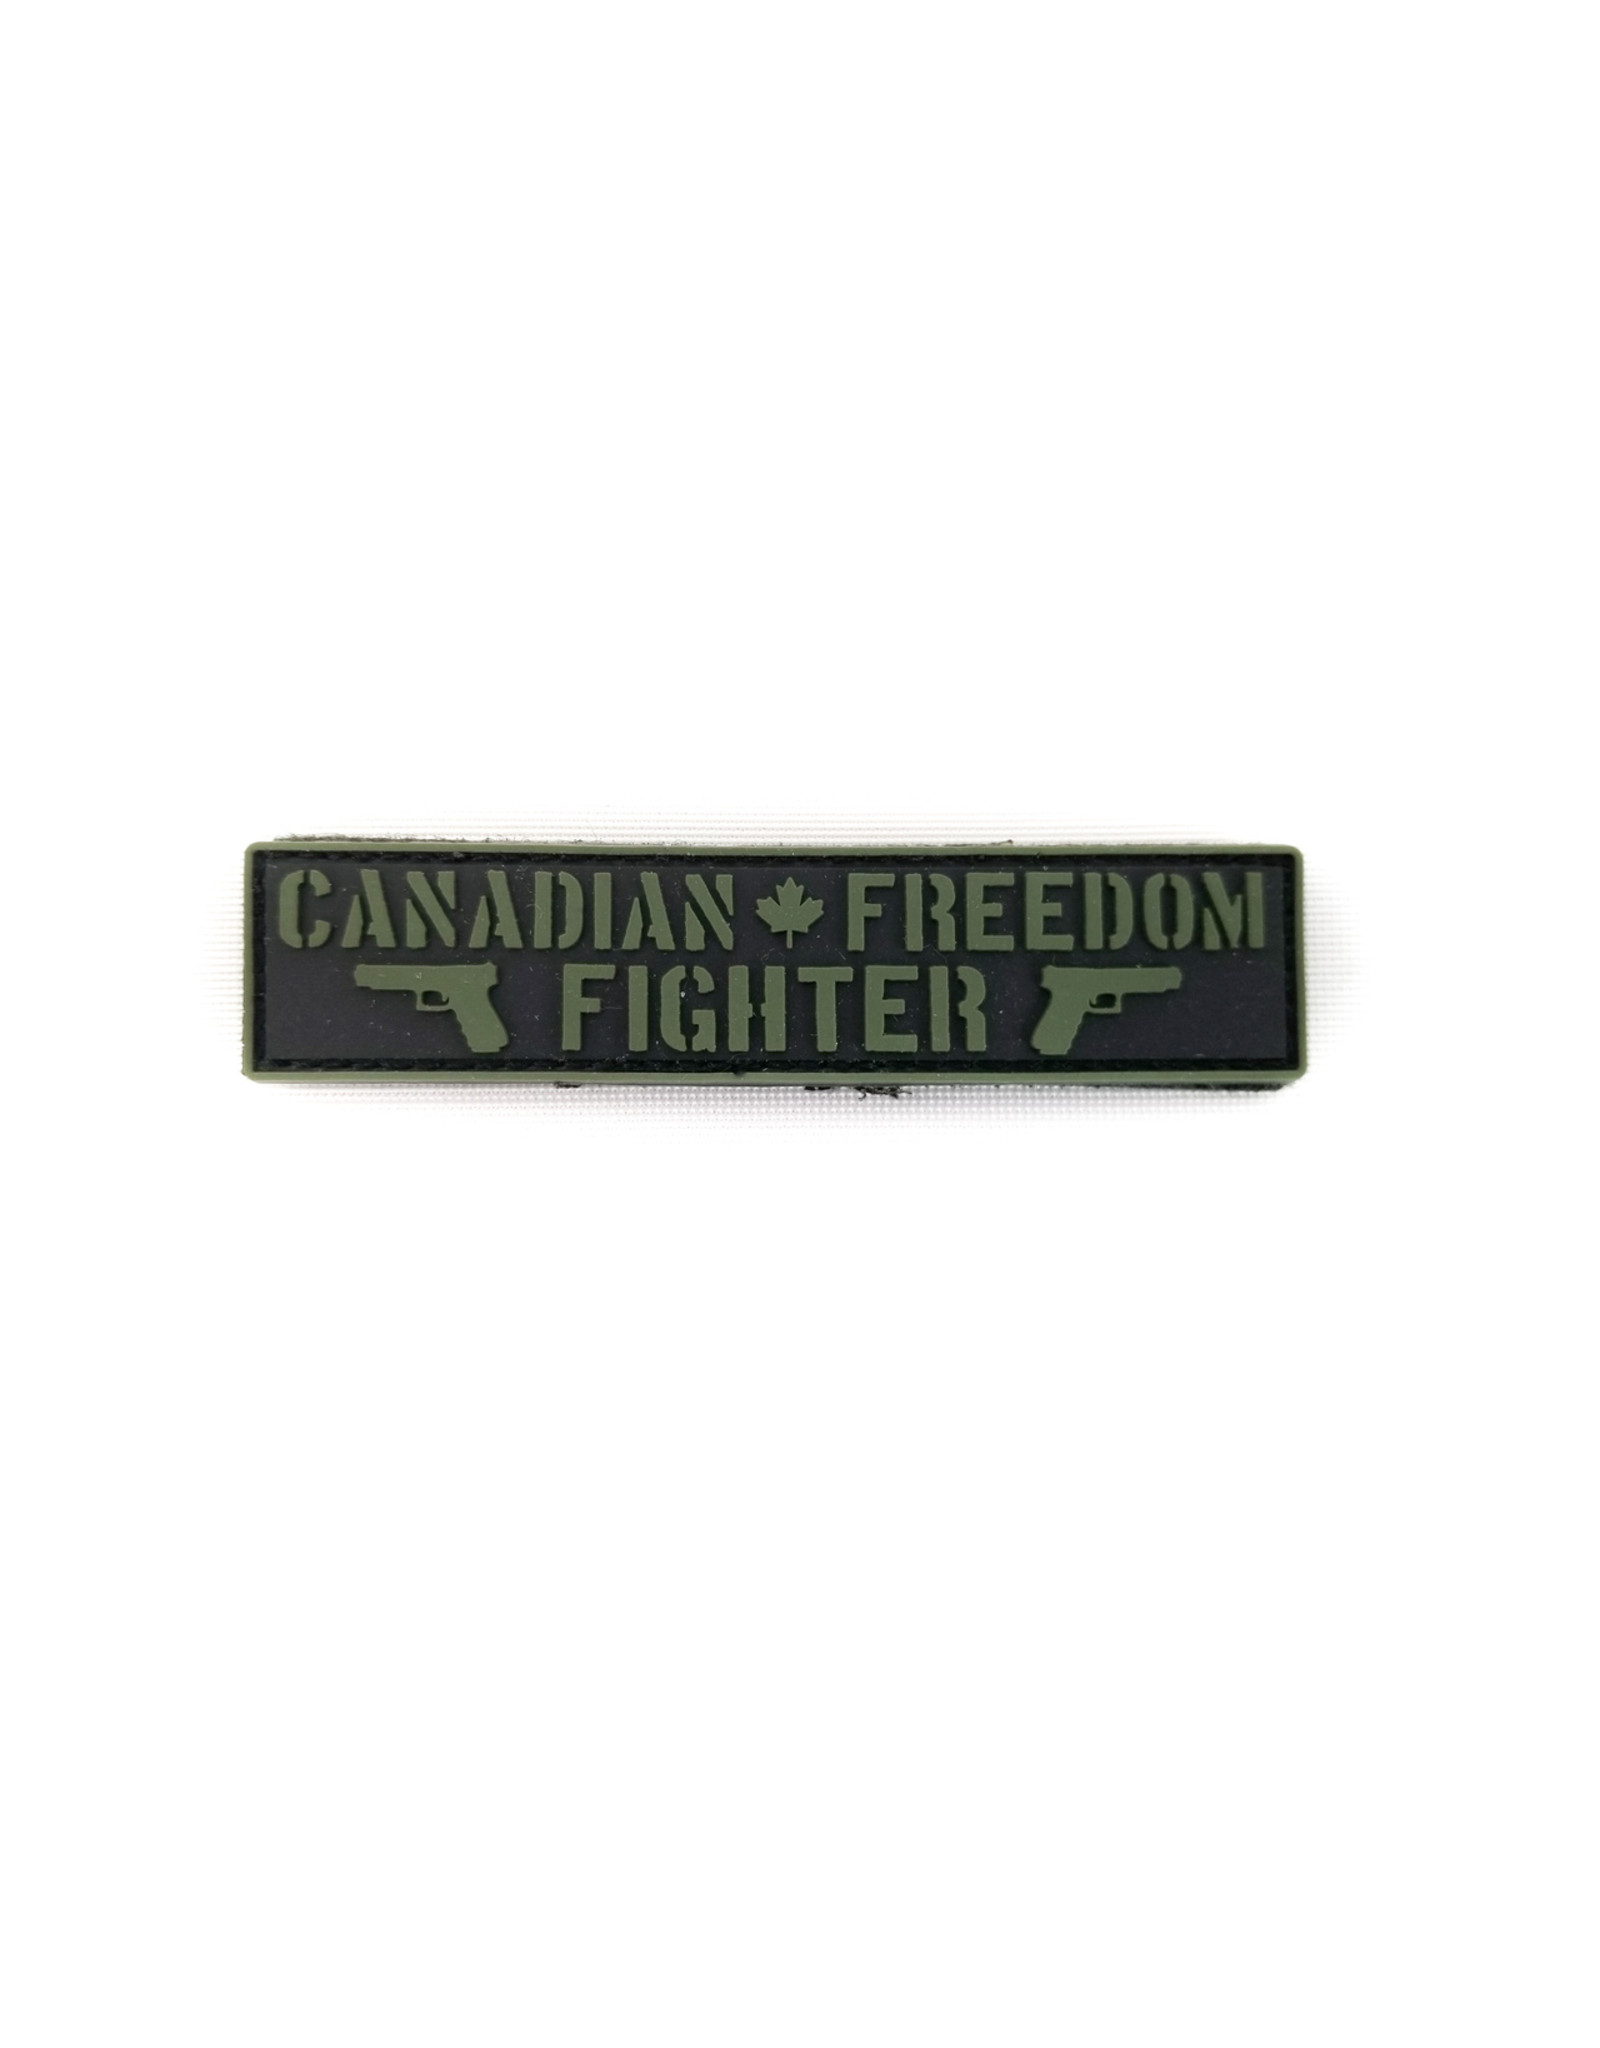 TIC Patch - FREEDOM FIGHTER ODG